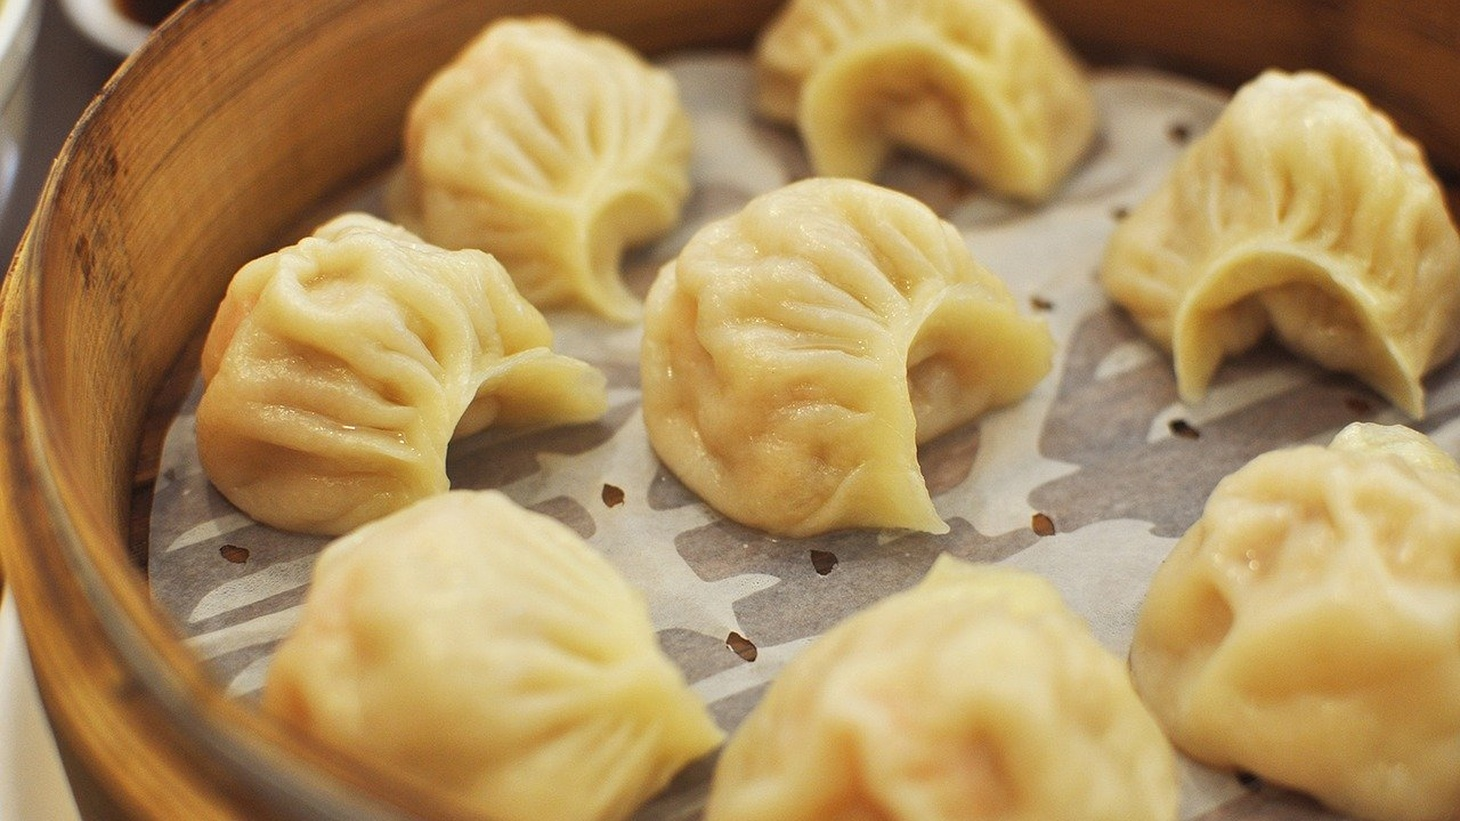 Dumplings are a popular menu item from the restaurants that Good Food listeners are recommending.